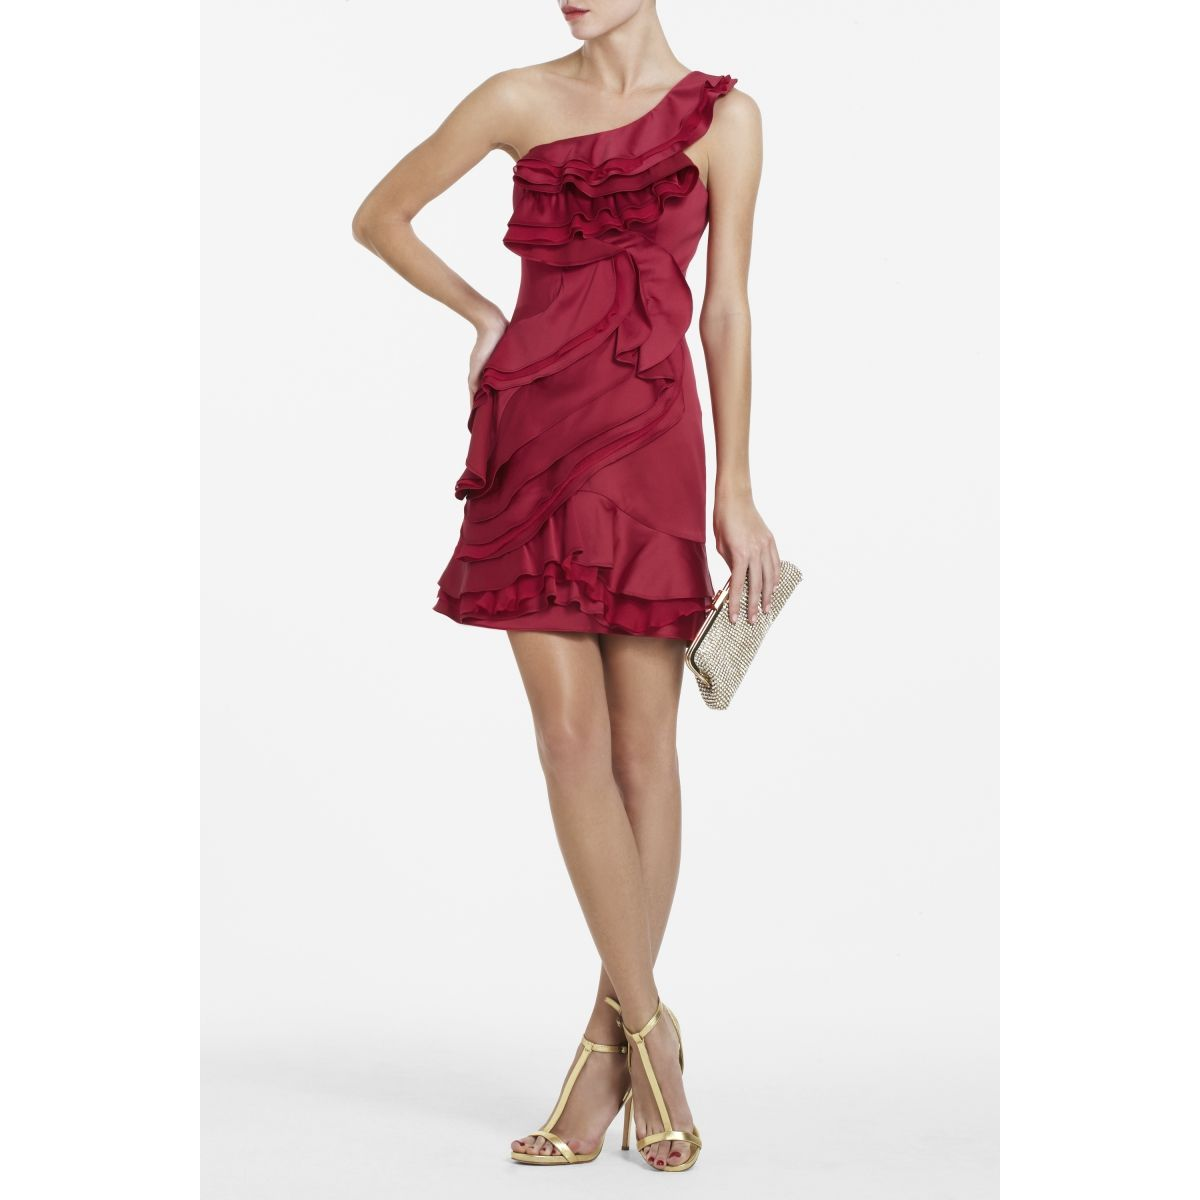 Perfect to wear to a spring or even fall wedding or banquet